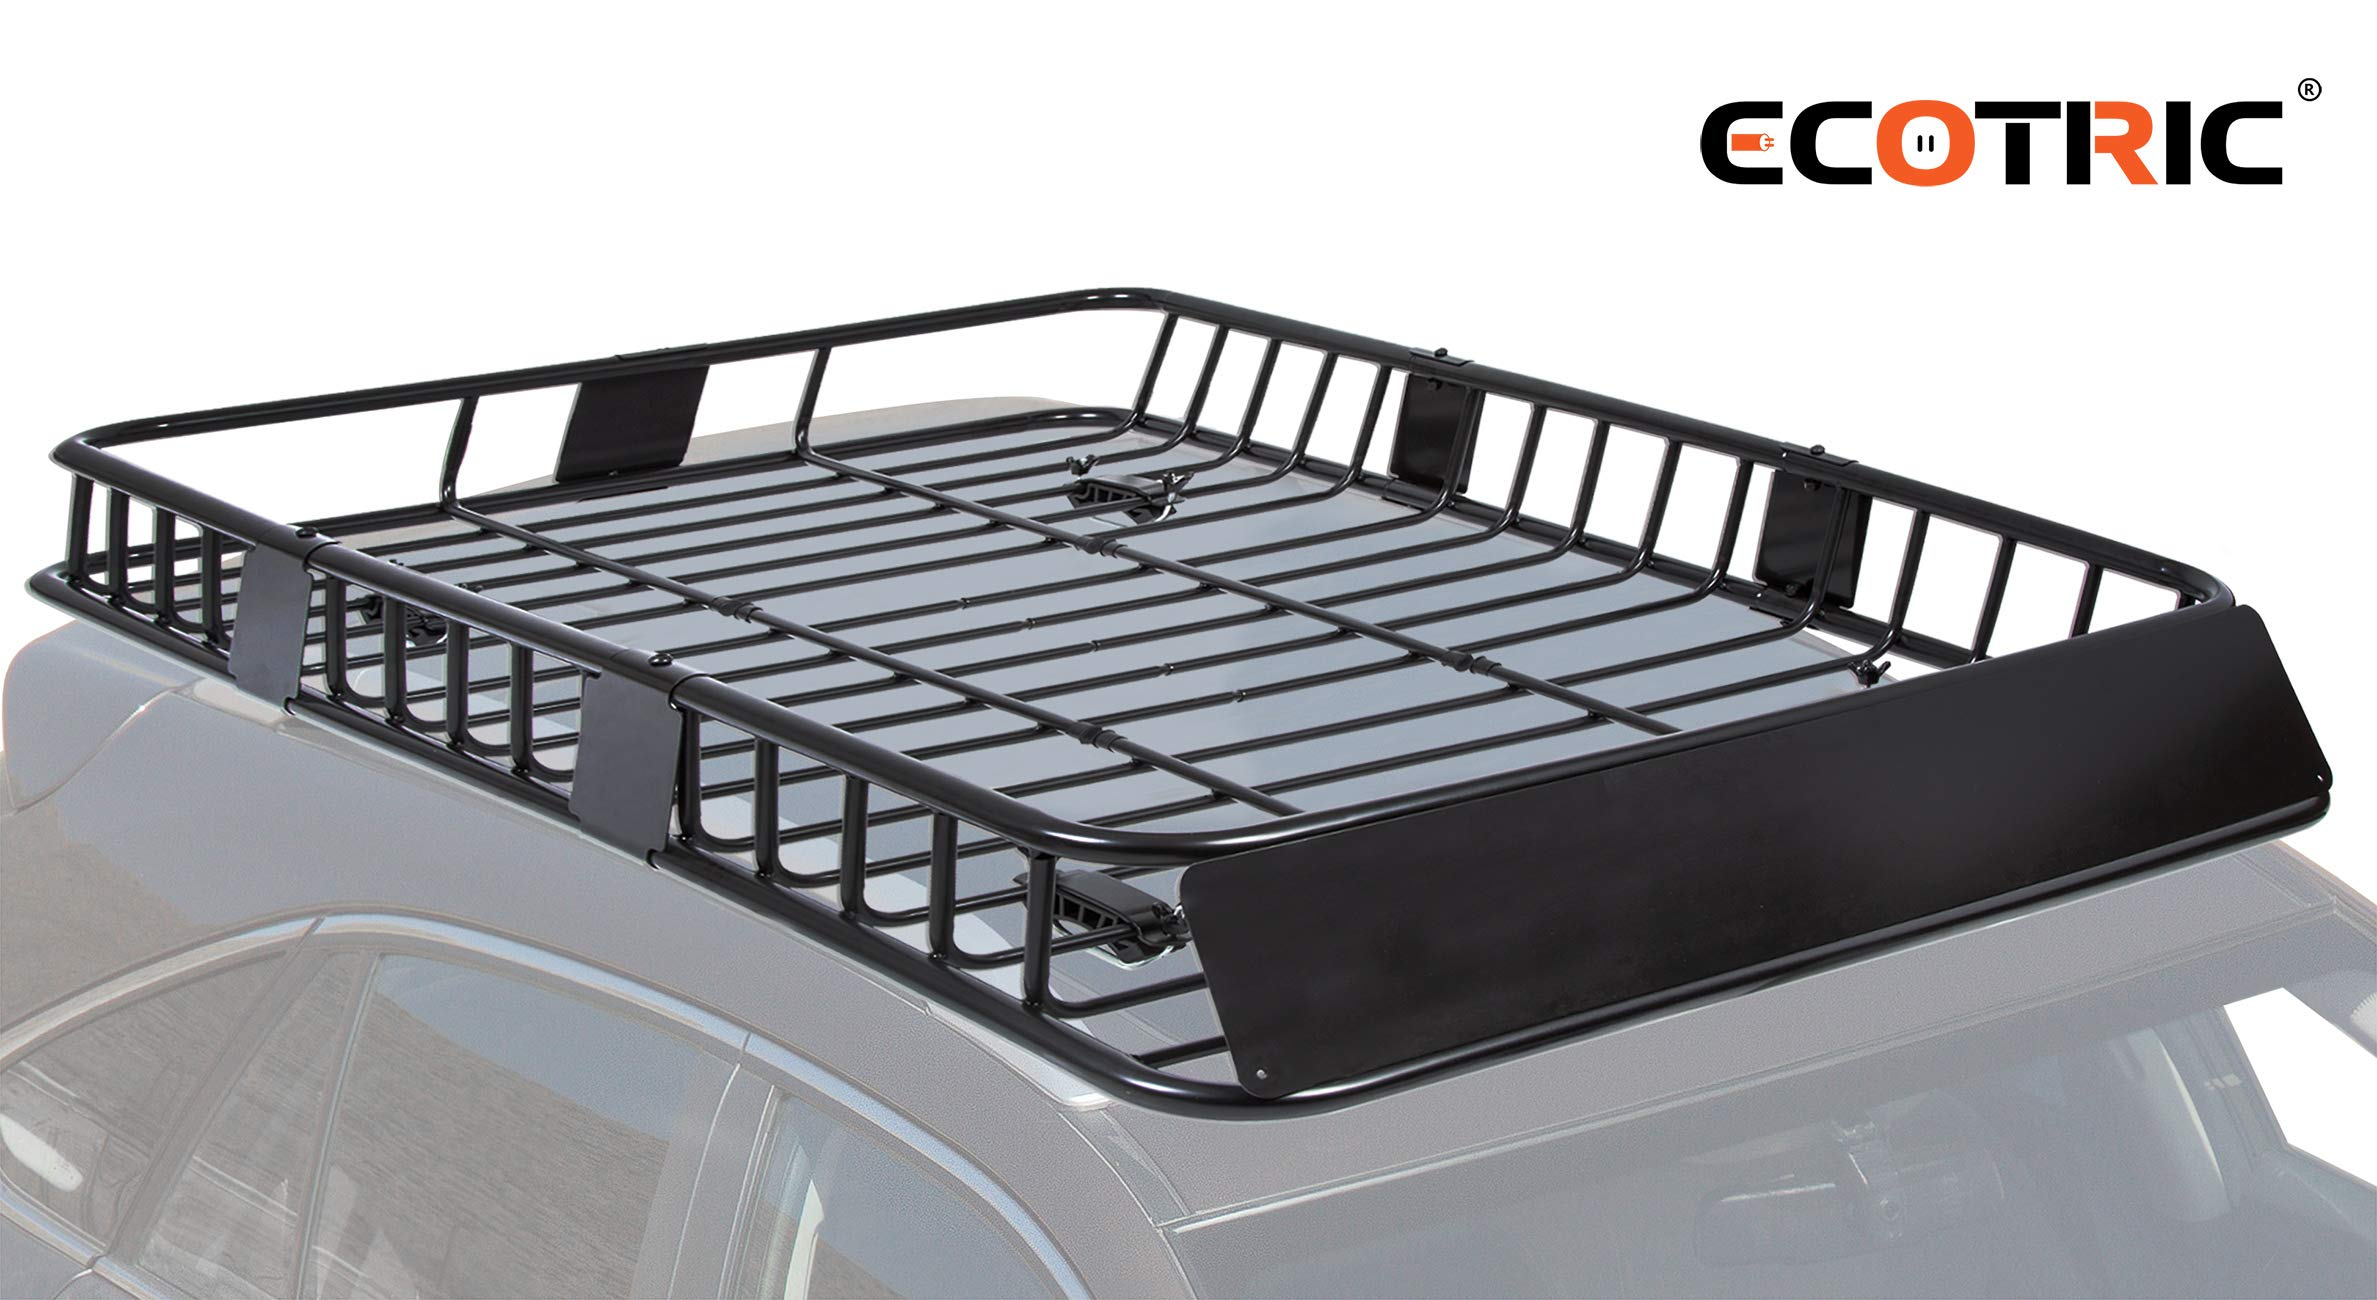 """ECOTRIC 8"""" Universal Black Roof Rack Cargo Carrier Car Top Luggage Holder  with Extension Carrier Basket SUV Storage for Travel"""